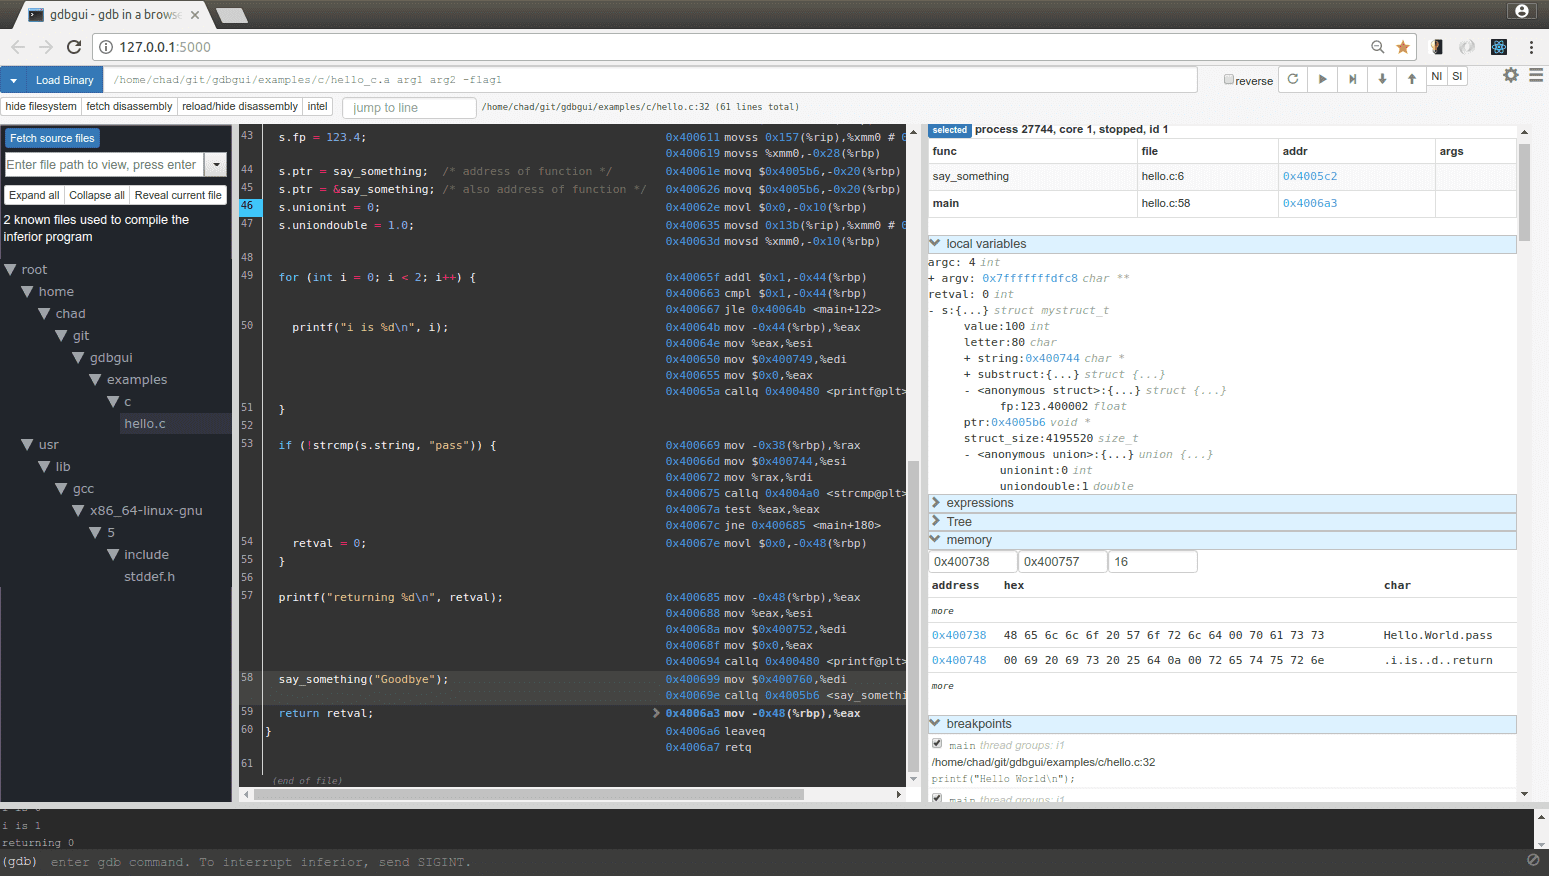 gdbgui v0.13.2.1 released: Browser-based frontend to gnu debugger